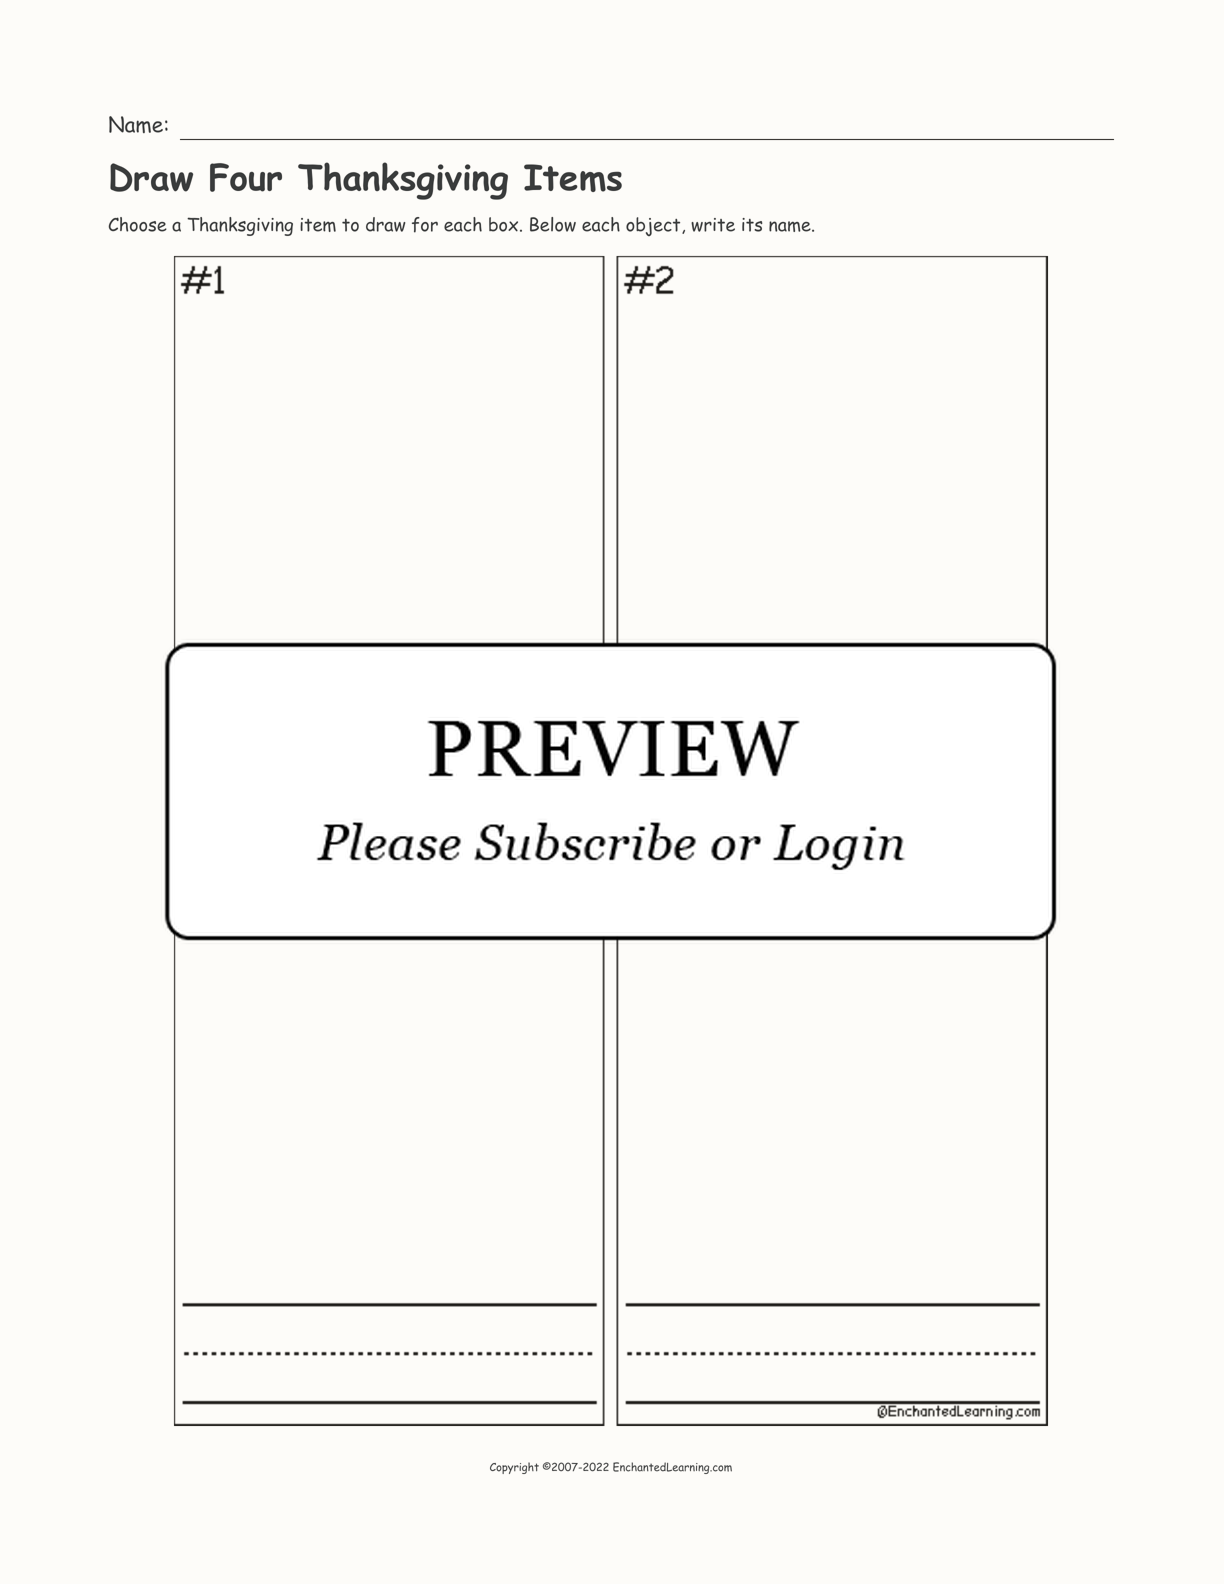 Draw Four Thanksgiving Items interactive printout page 1